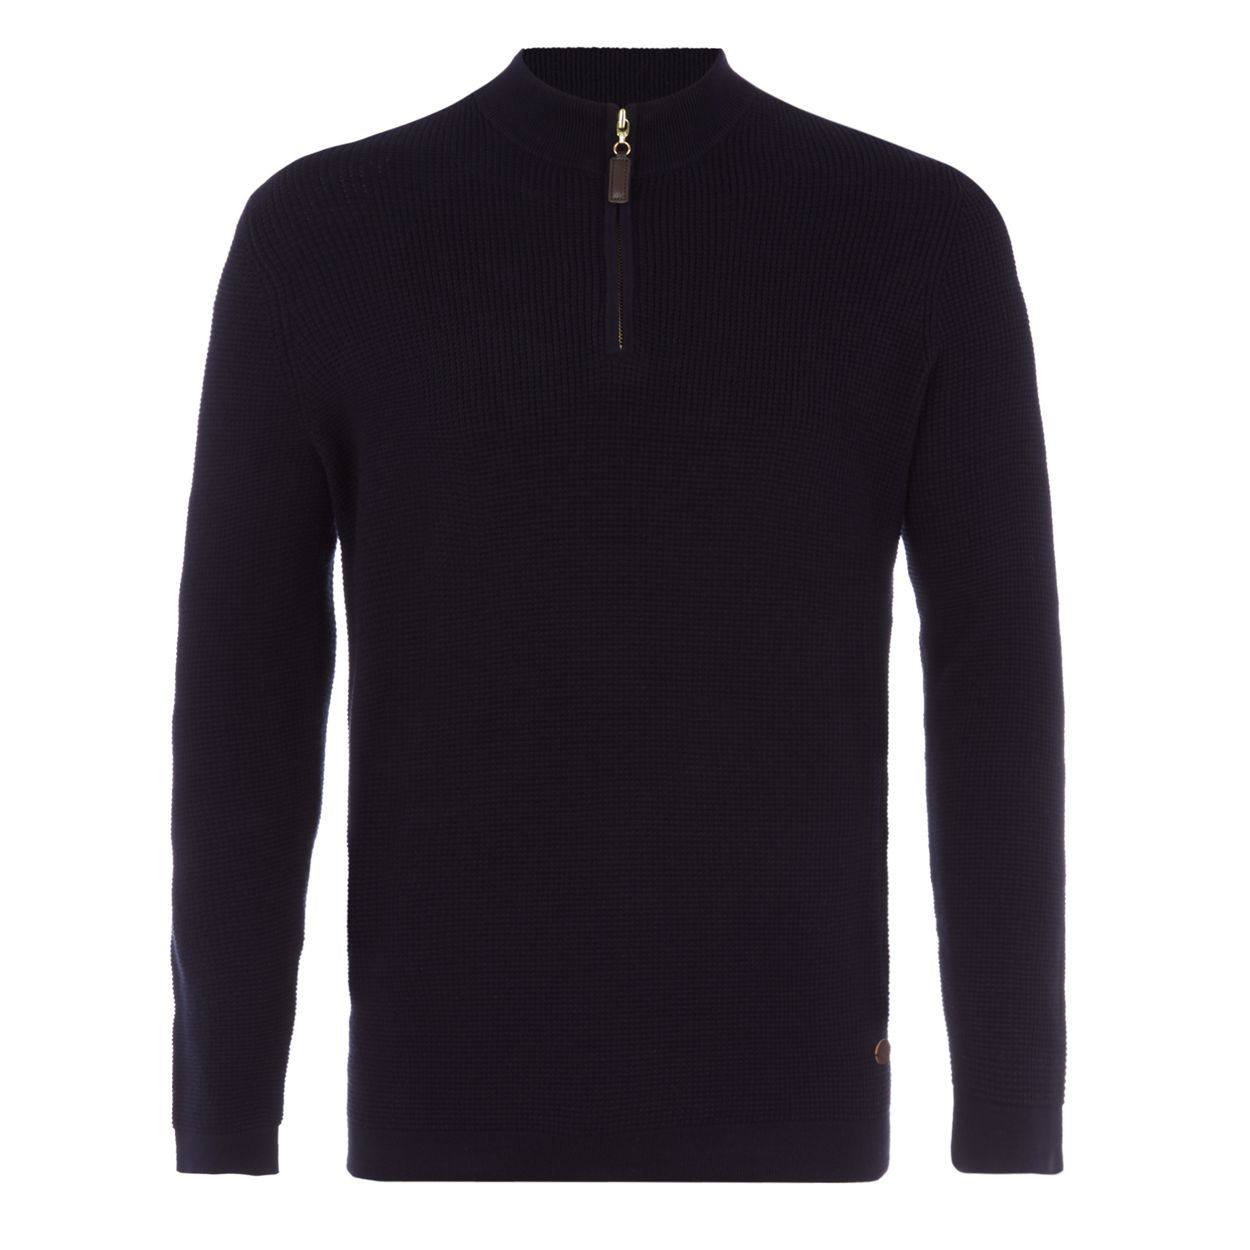 Hammond & Co. by Patrick Grant Navy waffle knit zip neck sweater